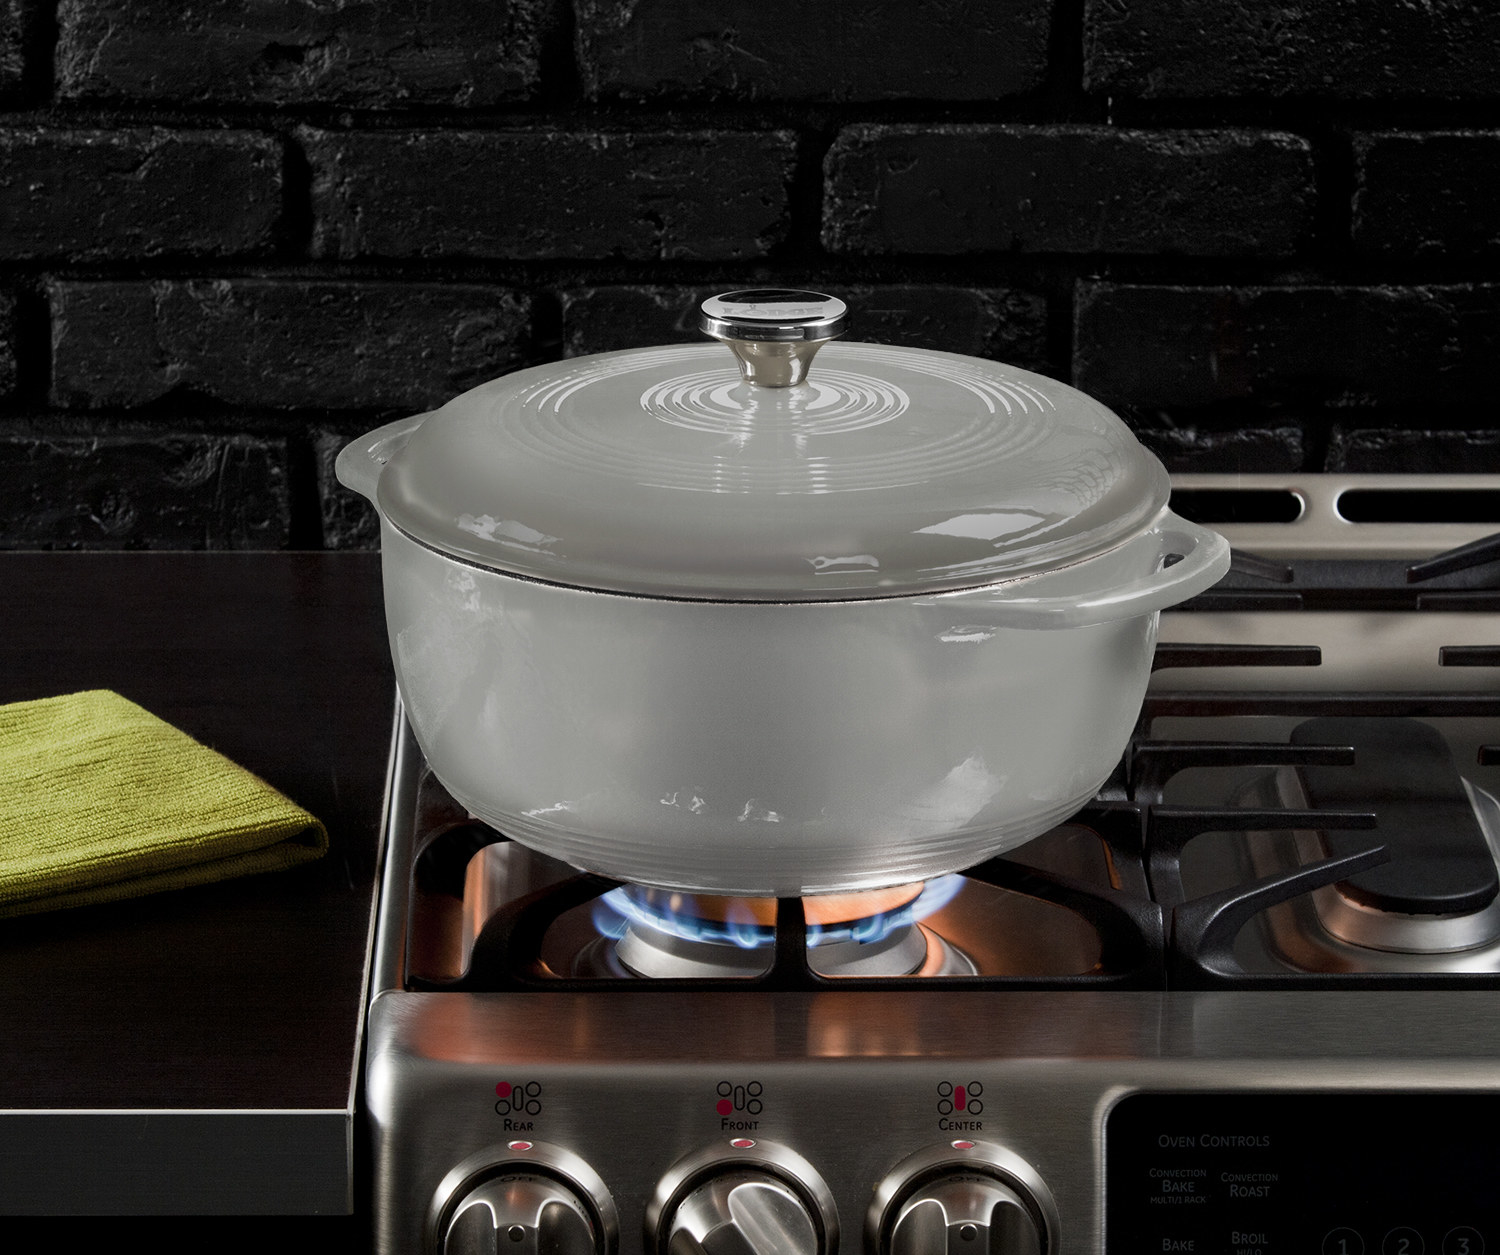 Silver dutch oven on stove